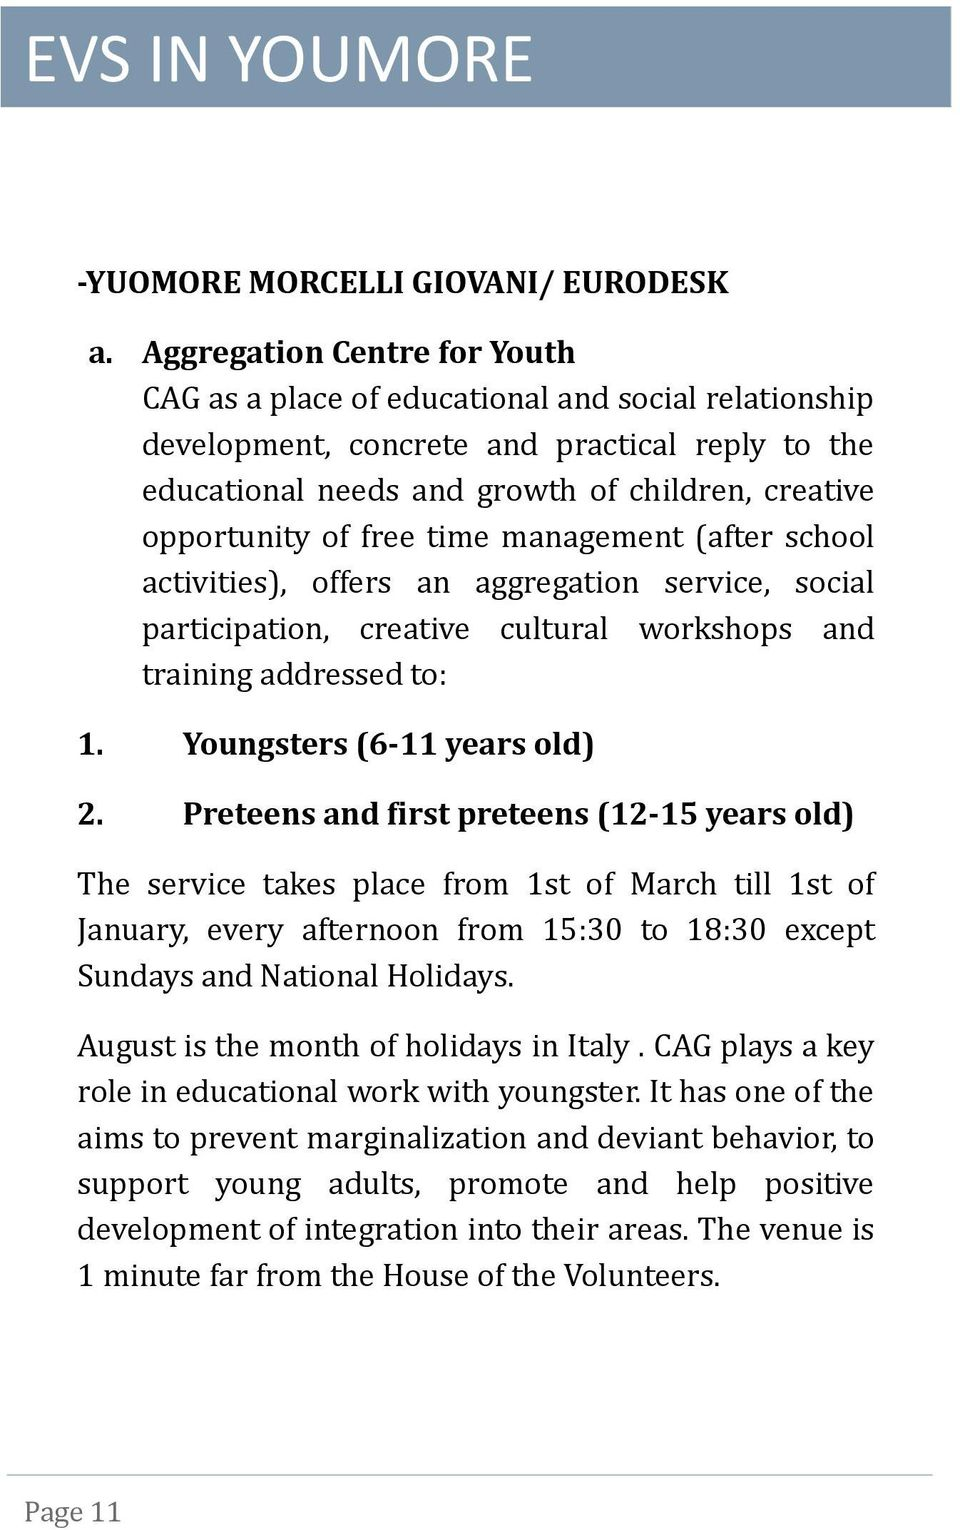 free time management (after school activities), offers an aggregation service, social participation, creative cultural workshops and training addressed to: 1. Youngsters (6-11 years old) 2.